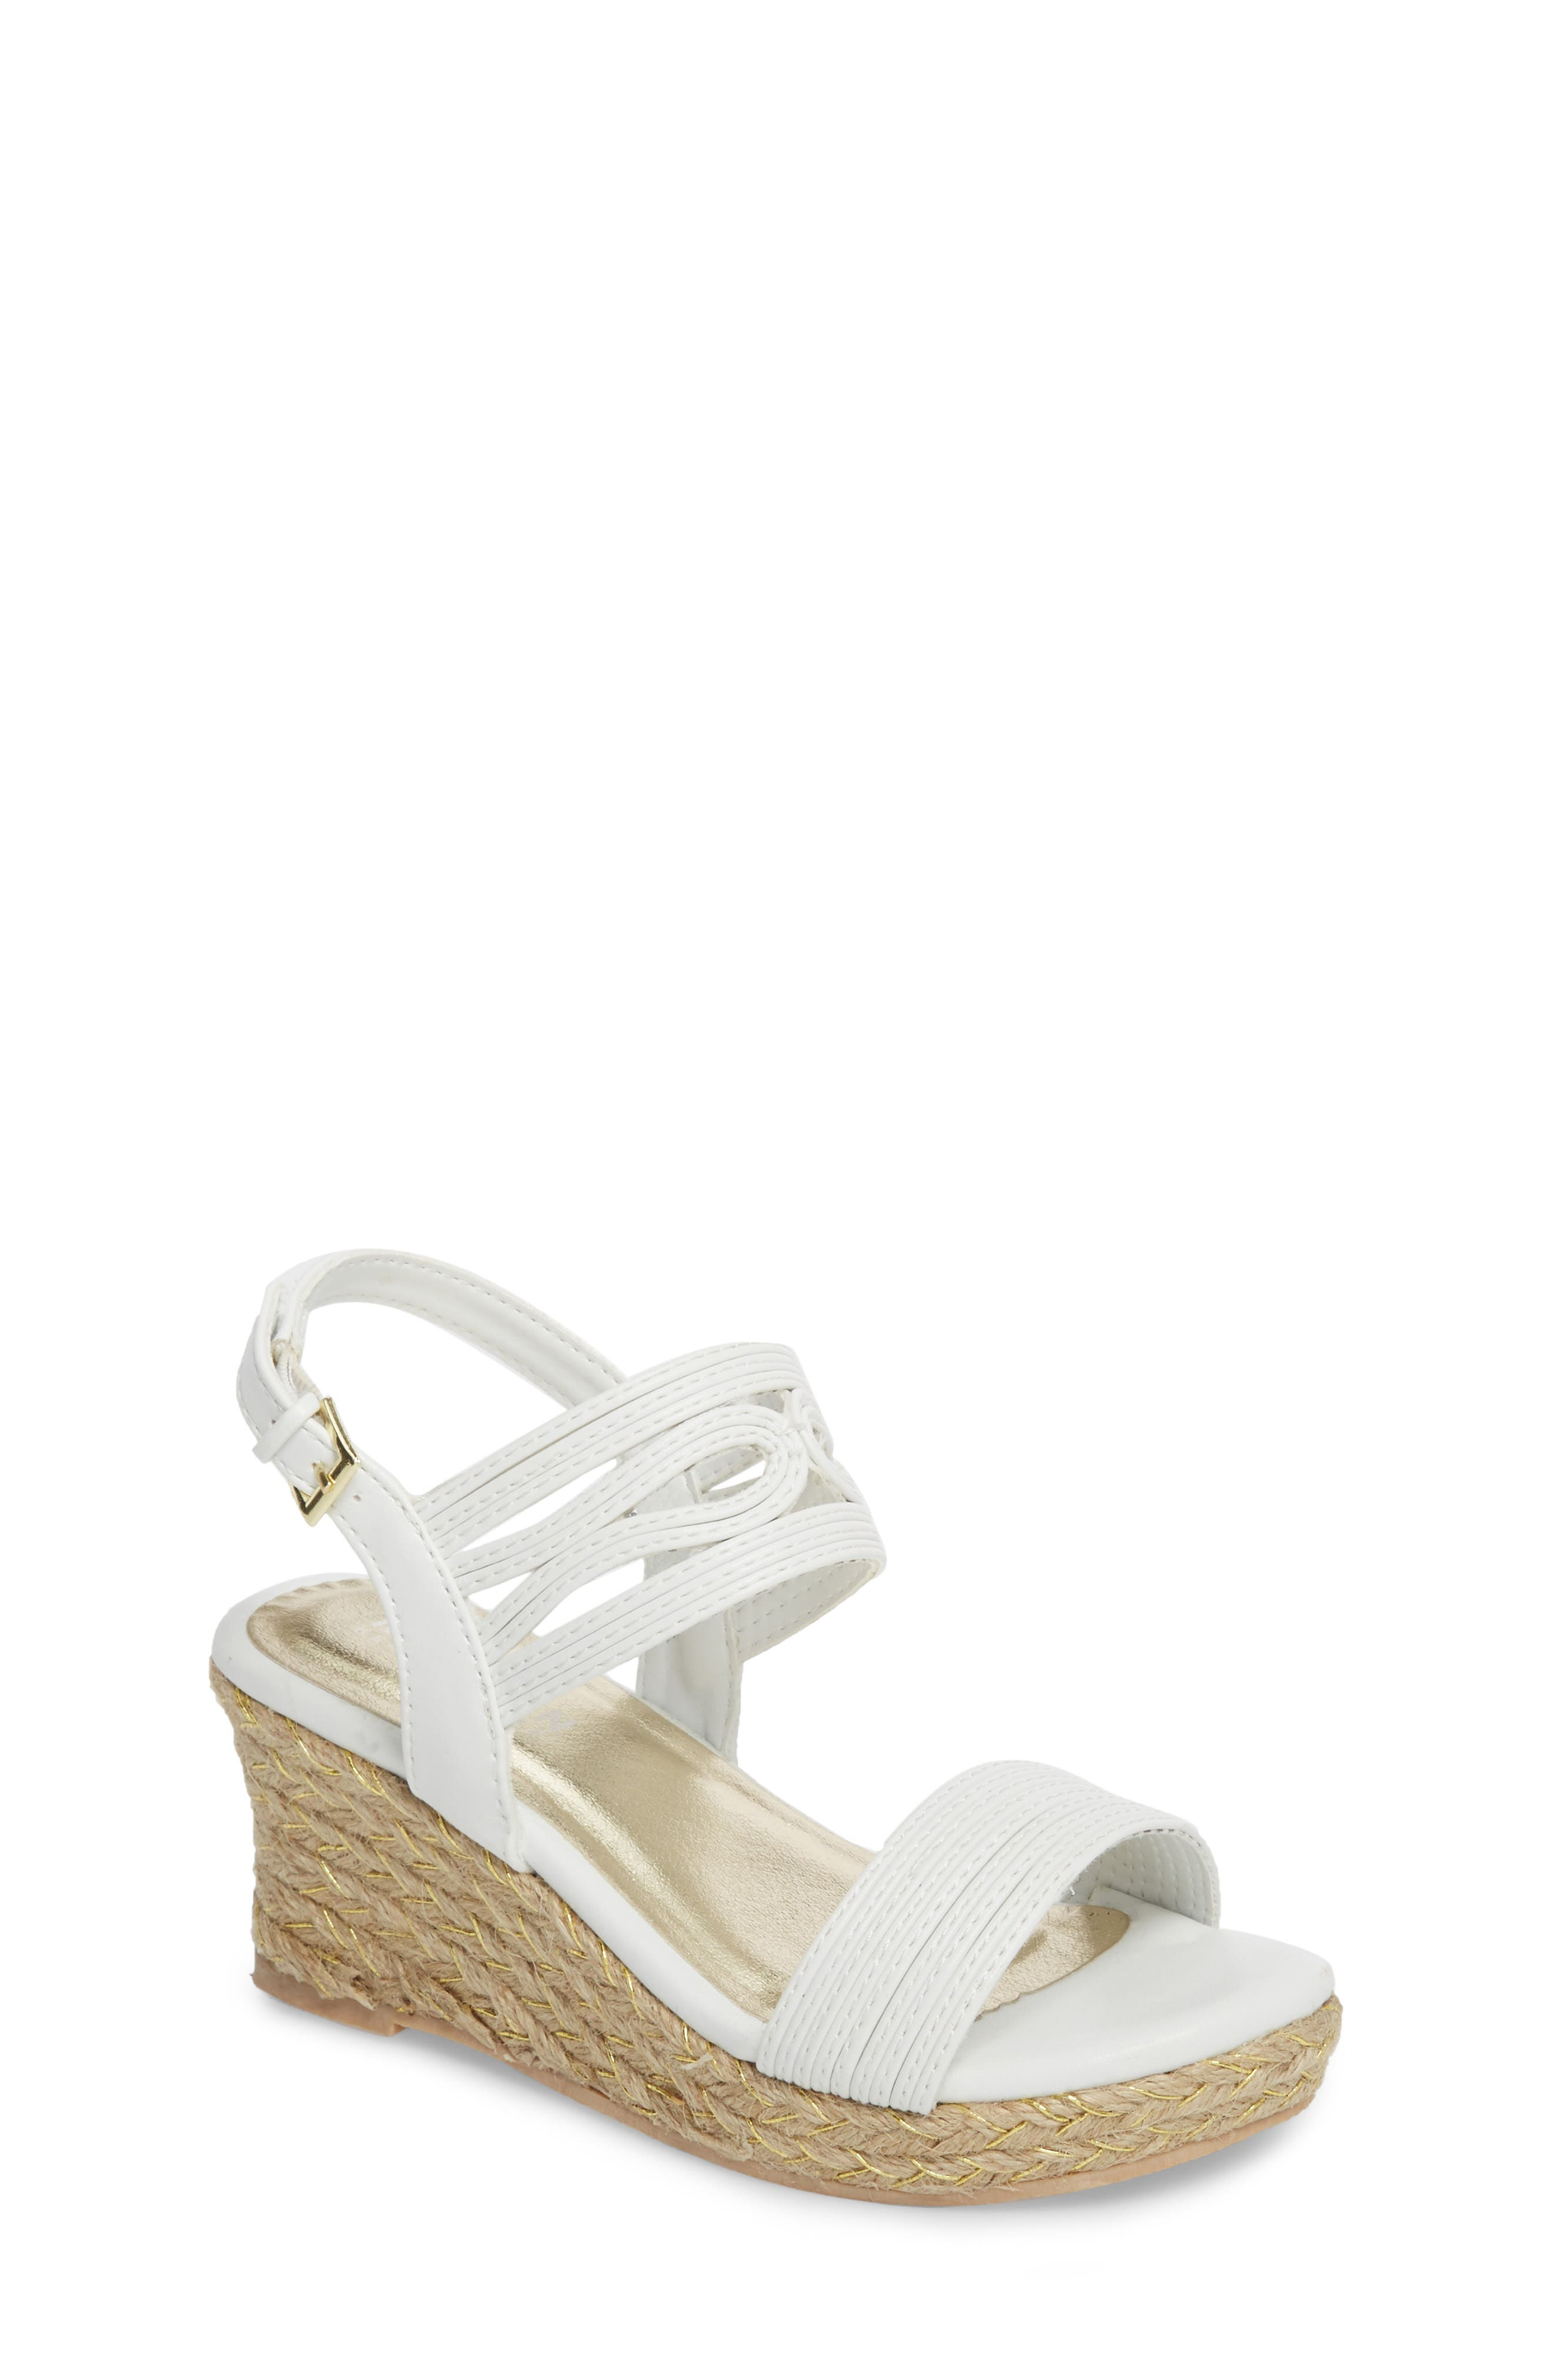 Reed Day Wedge Sandal,                             Main thumbnail 1, color,                             WHITE